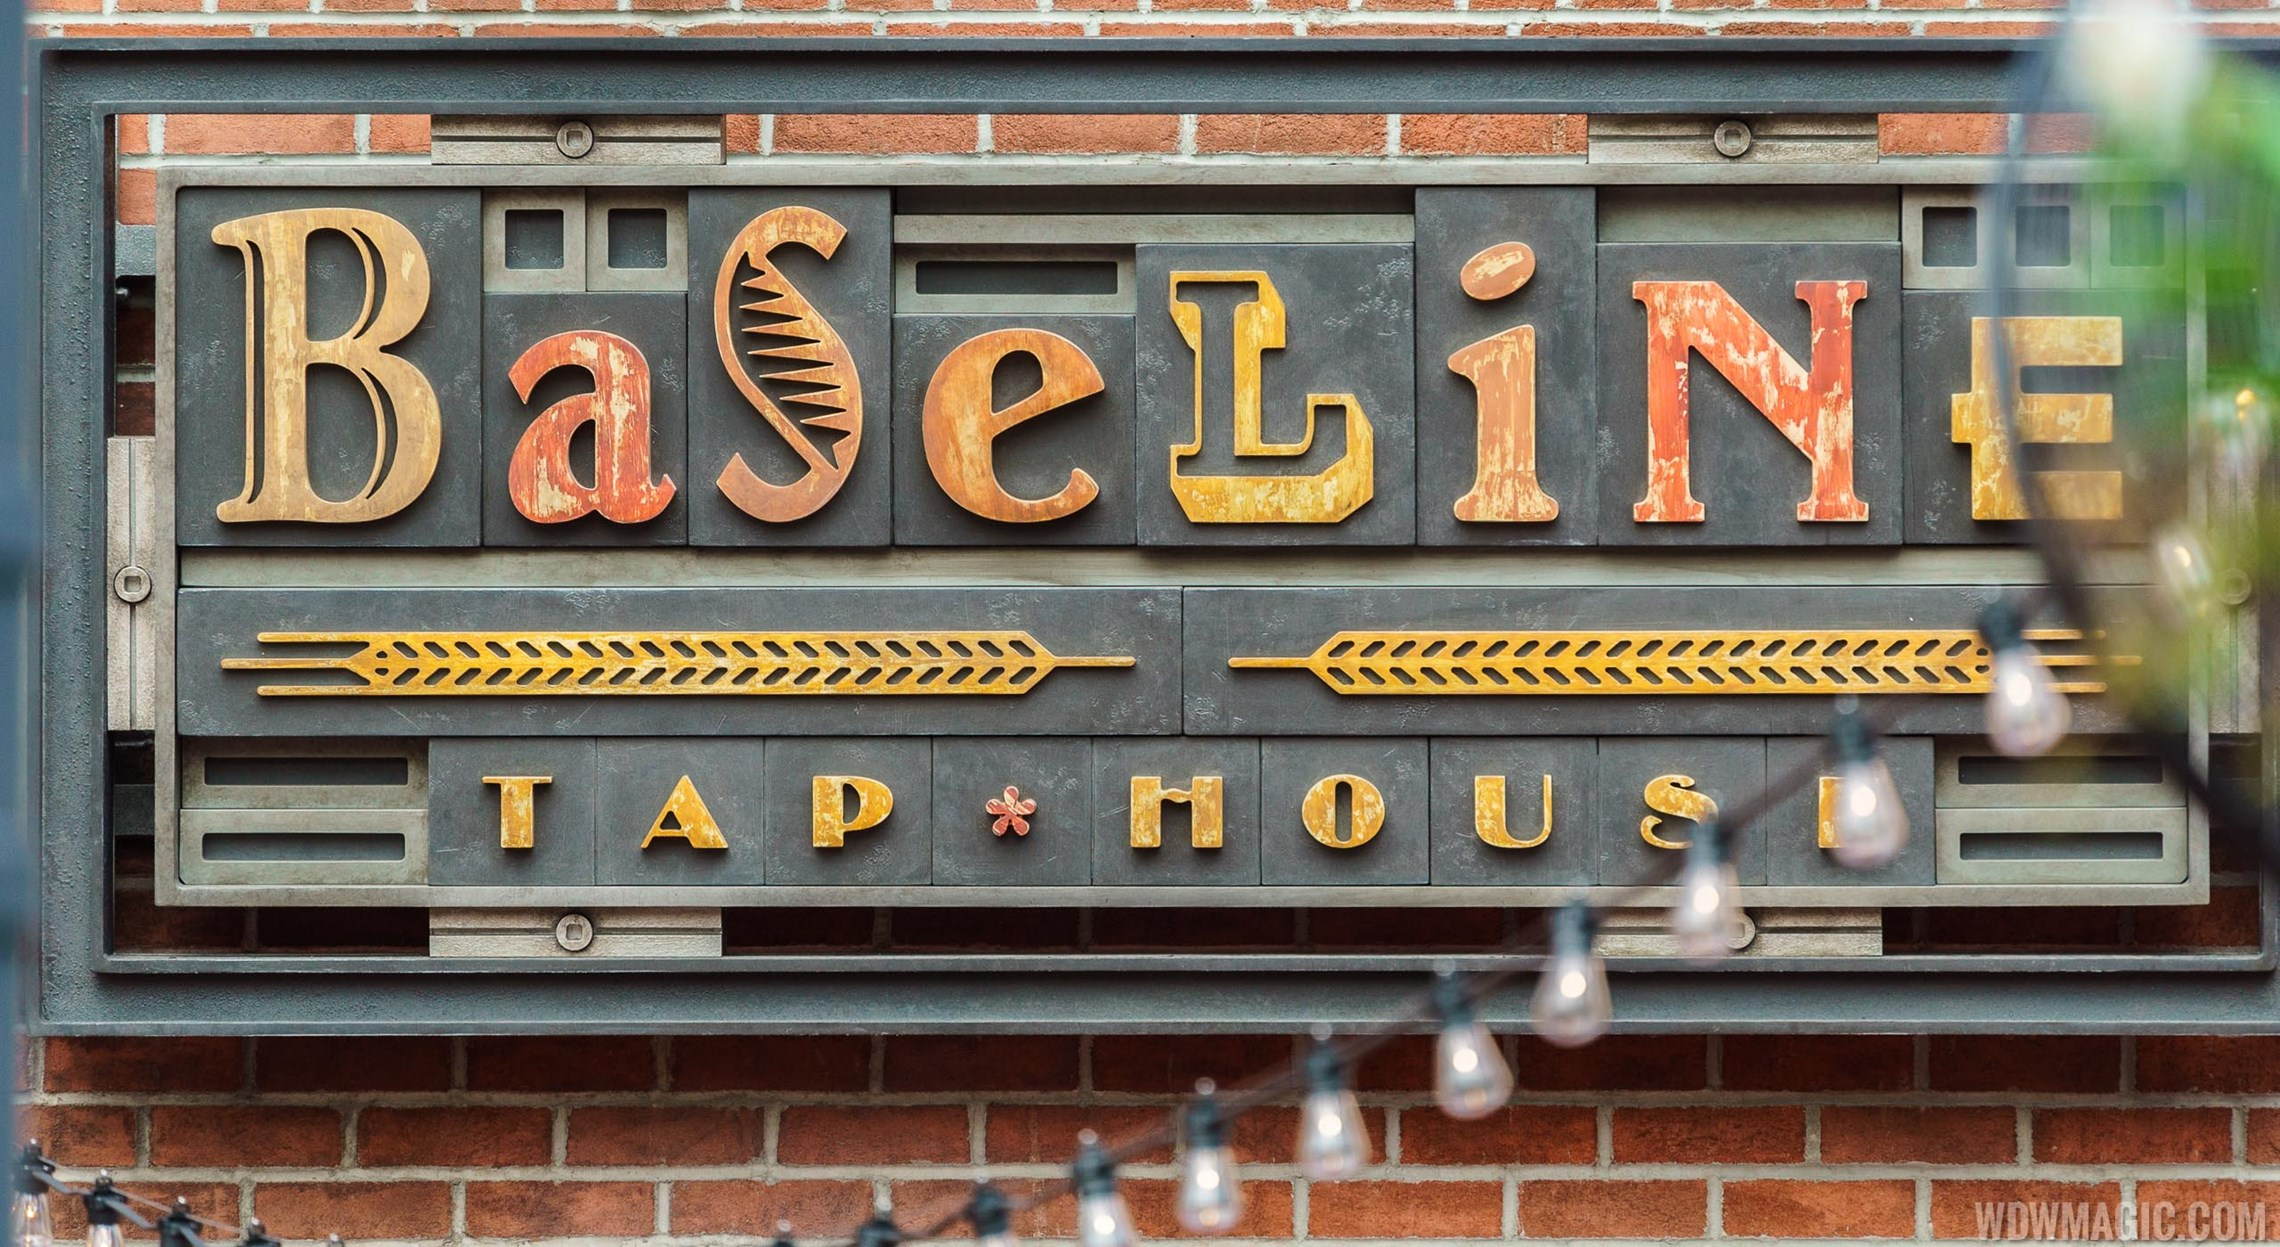 BaseLine Tap House now open at Disney's Hollywood Studios